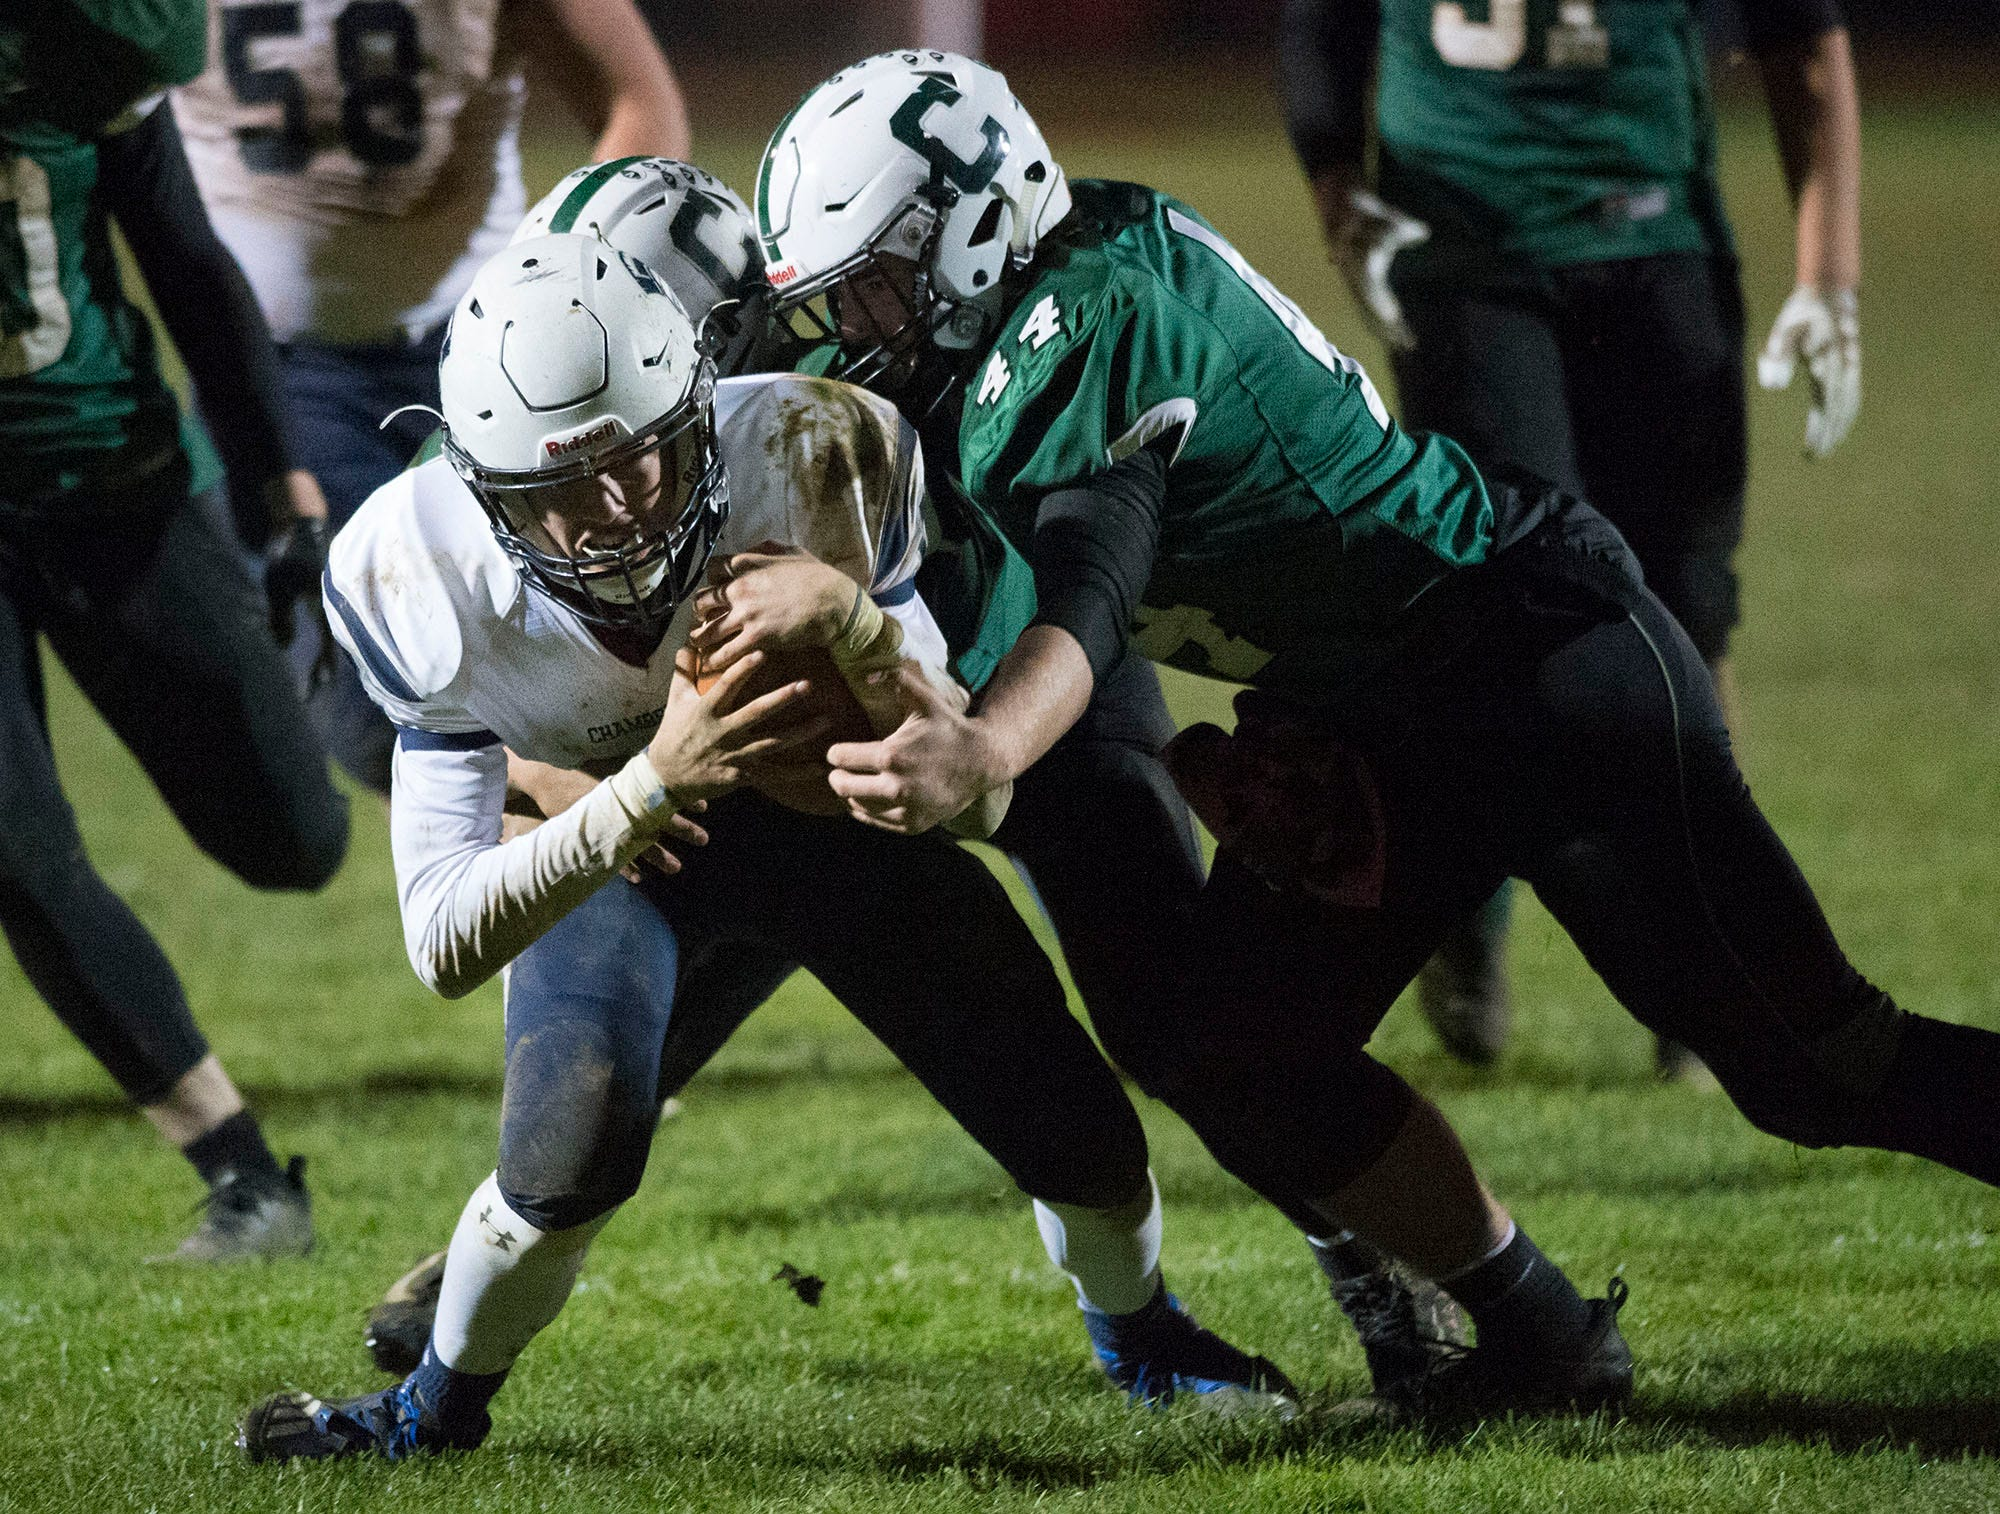 Chambersburg QB Brady Stumbaugh muscles to the one yard line before scoring for the Trojans as Carlisle's Braydon Keller (44) delivers a hit. Chambersburg won 26-20 on a last second interception.